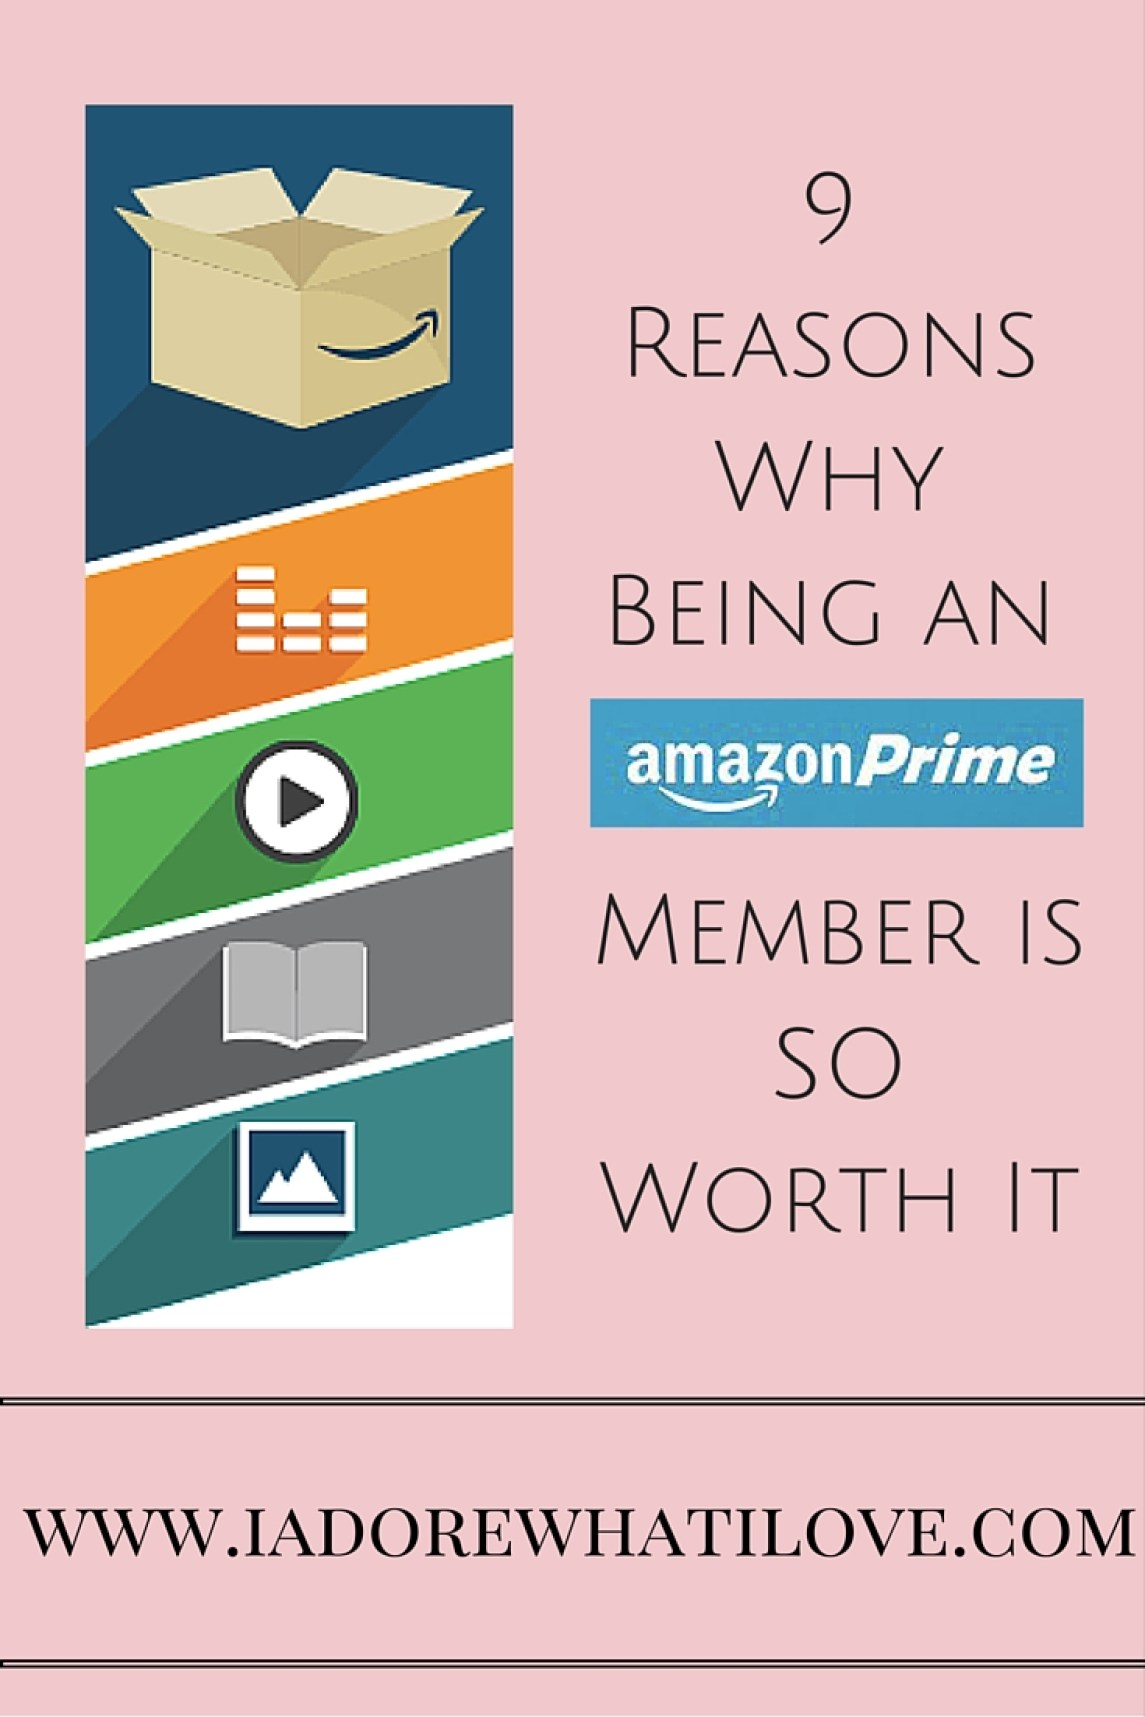 I Adore What I Love Blog // 9 REASONS WHY BEING AN AMAZON PRIME MEMBER IS SO WORTH IT // www.iadorewhatilove.com #iadorewhatilove